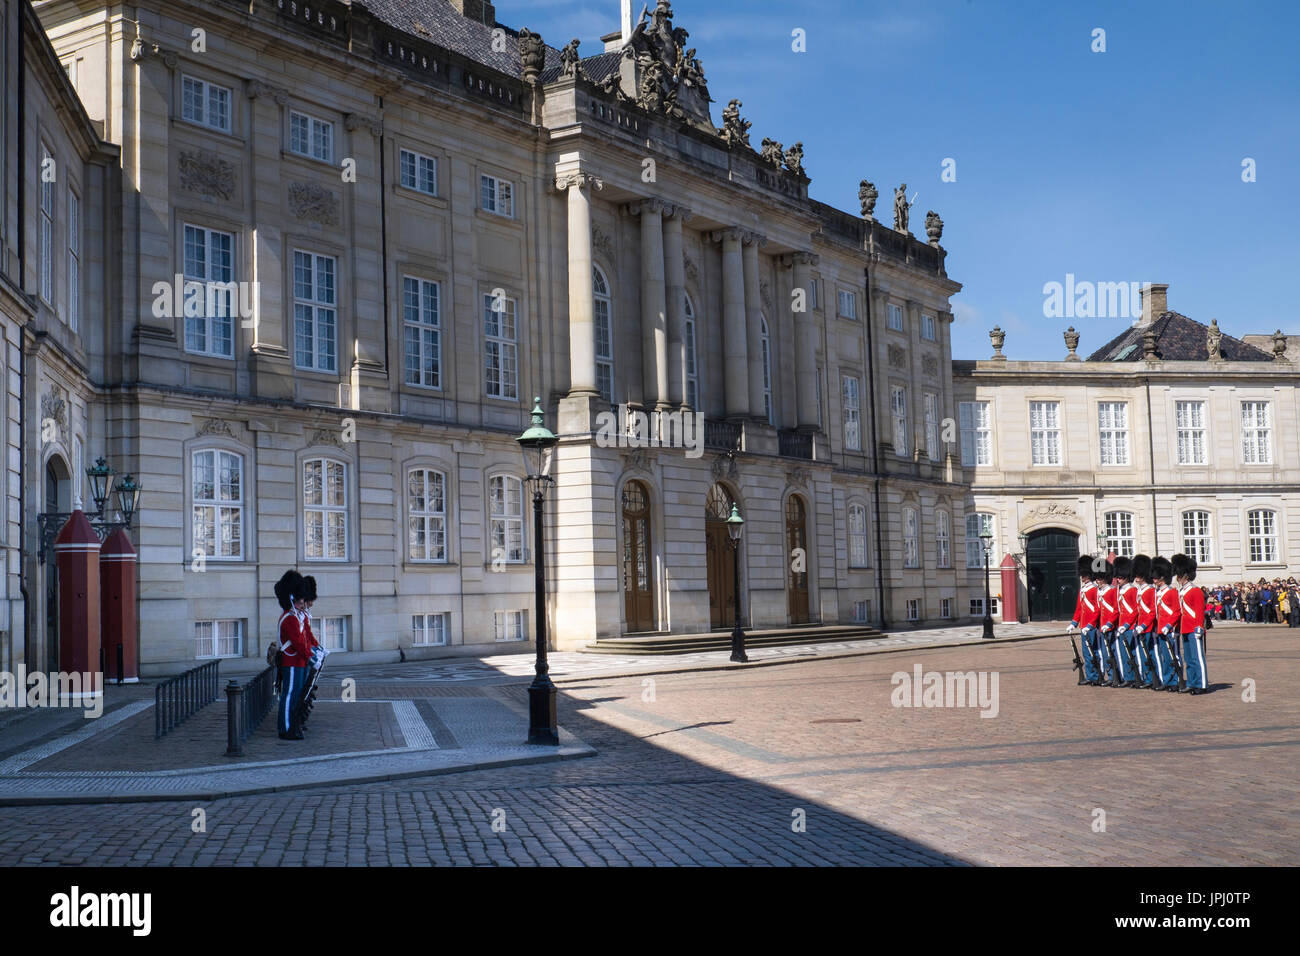 Changing of the guard in front of the Amalienborg Palace, Copenhagen, Denmark. Stock Photo